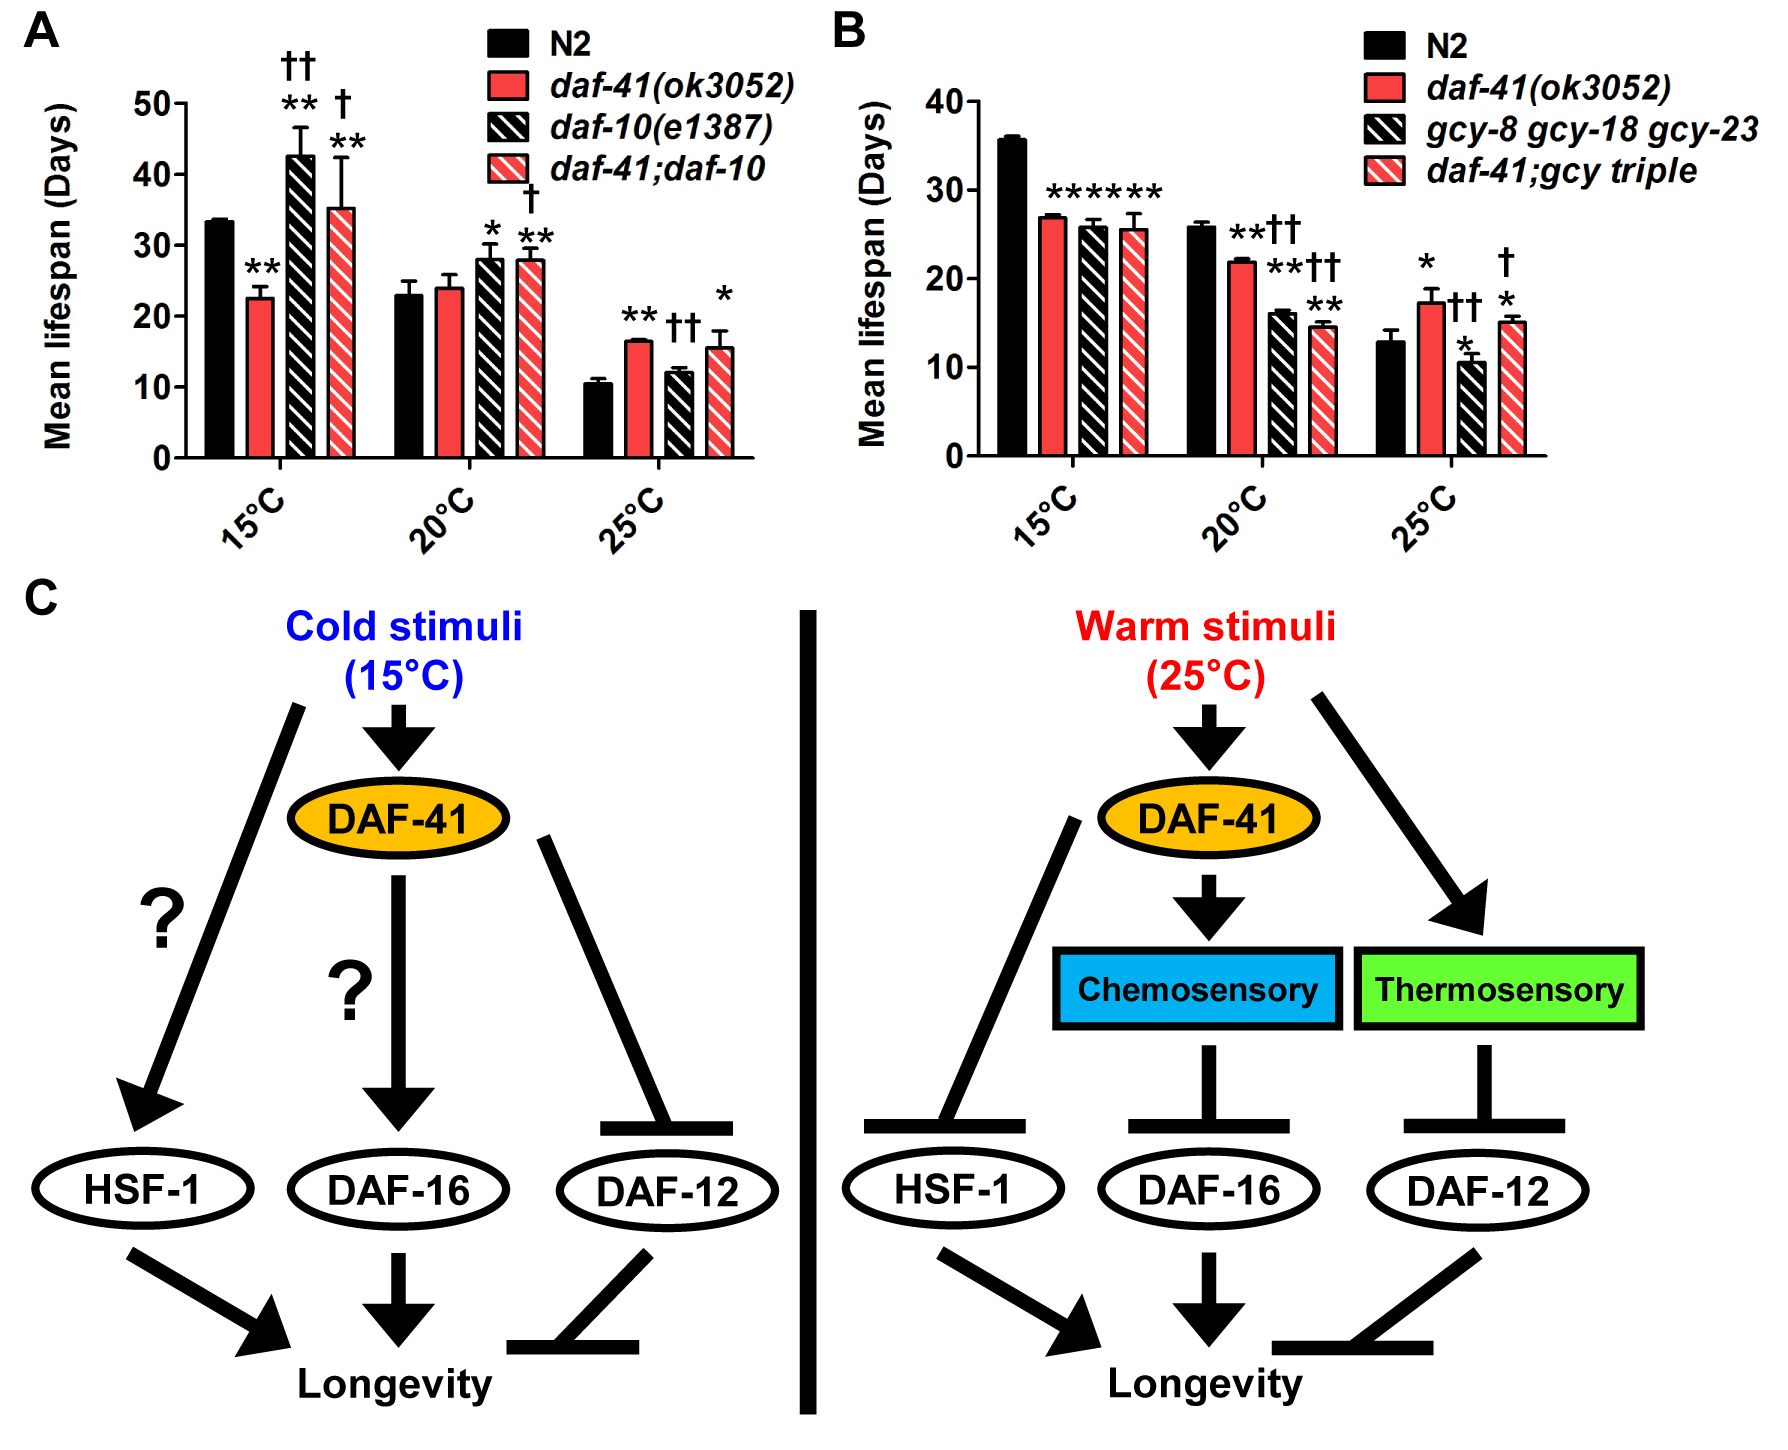 <i>daf-41</i> partially interacts with the chemosensory and thermosensory apparatus to regulate longevity.